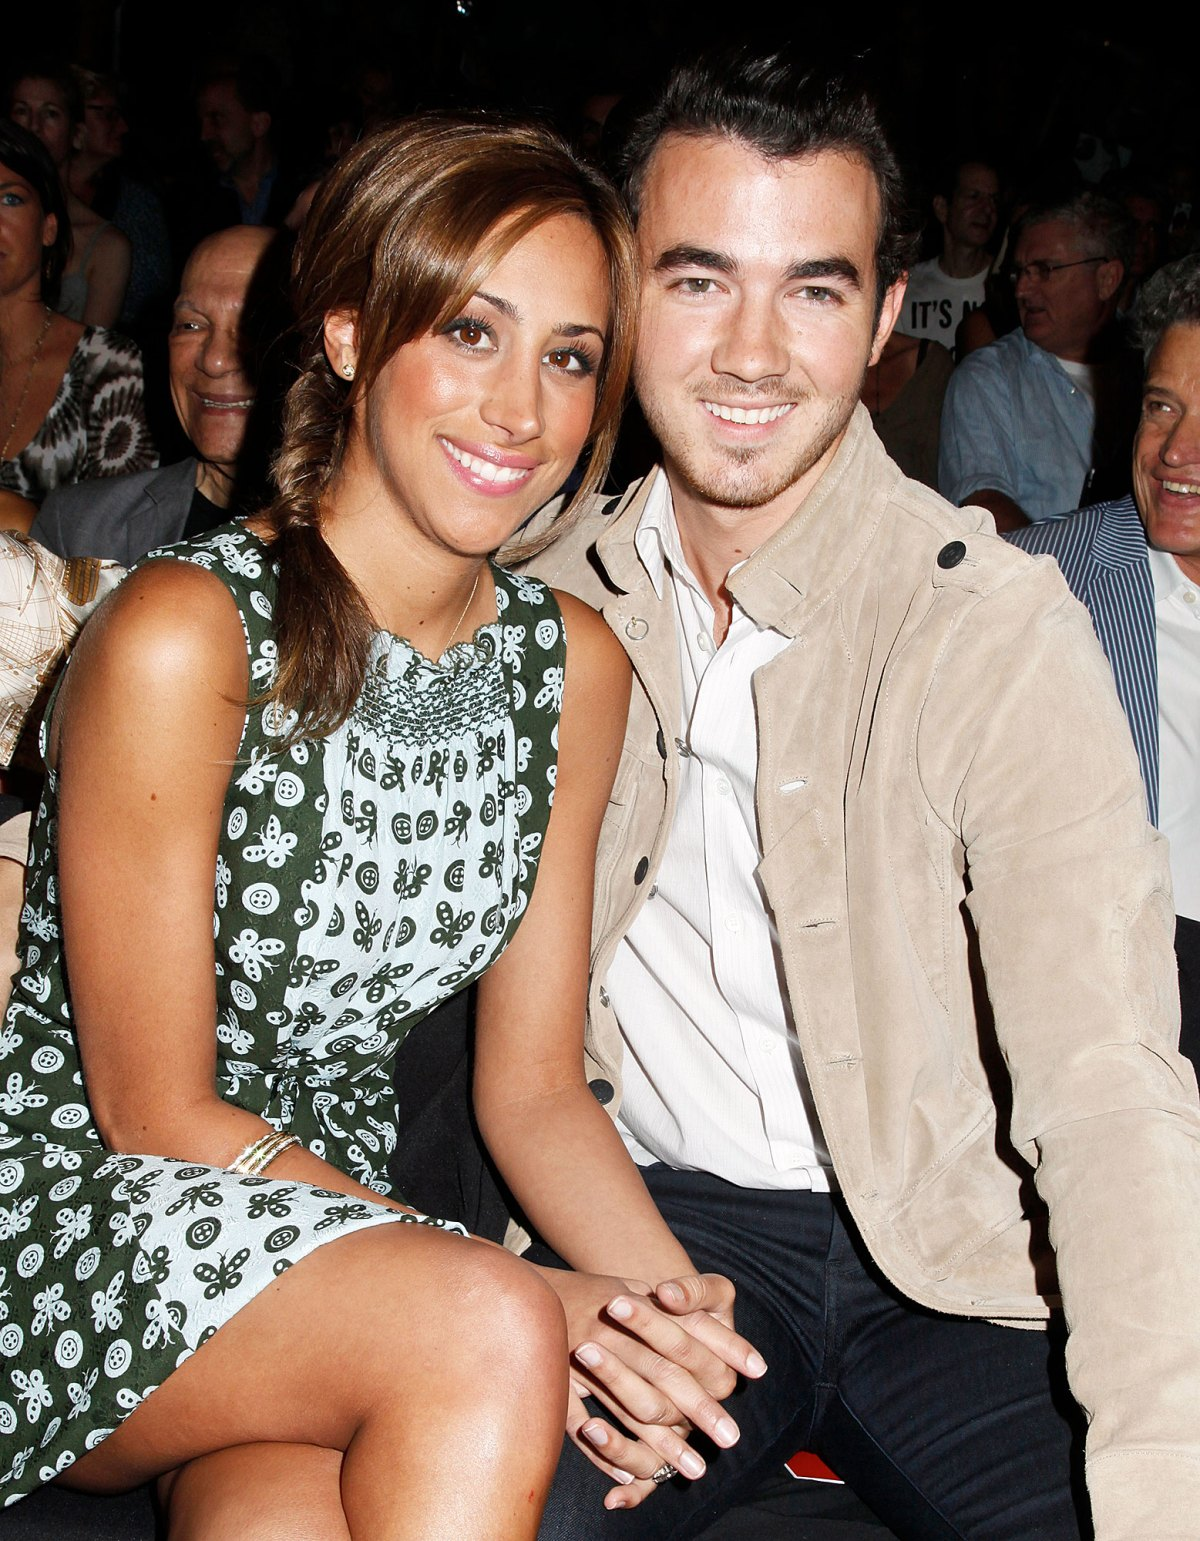 Whos dating kevin jonas what makes people intimidating